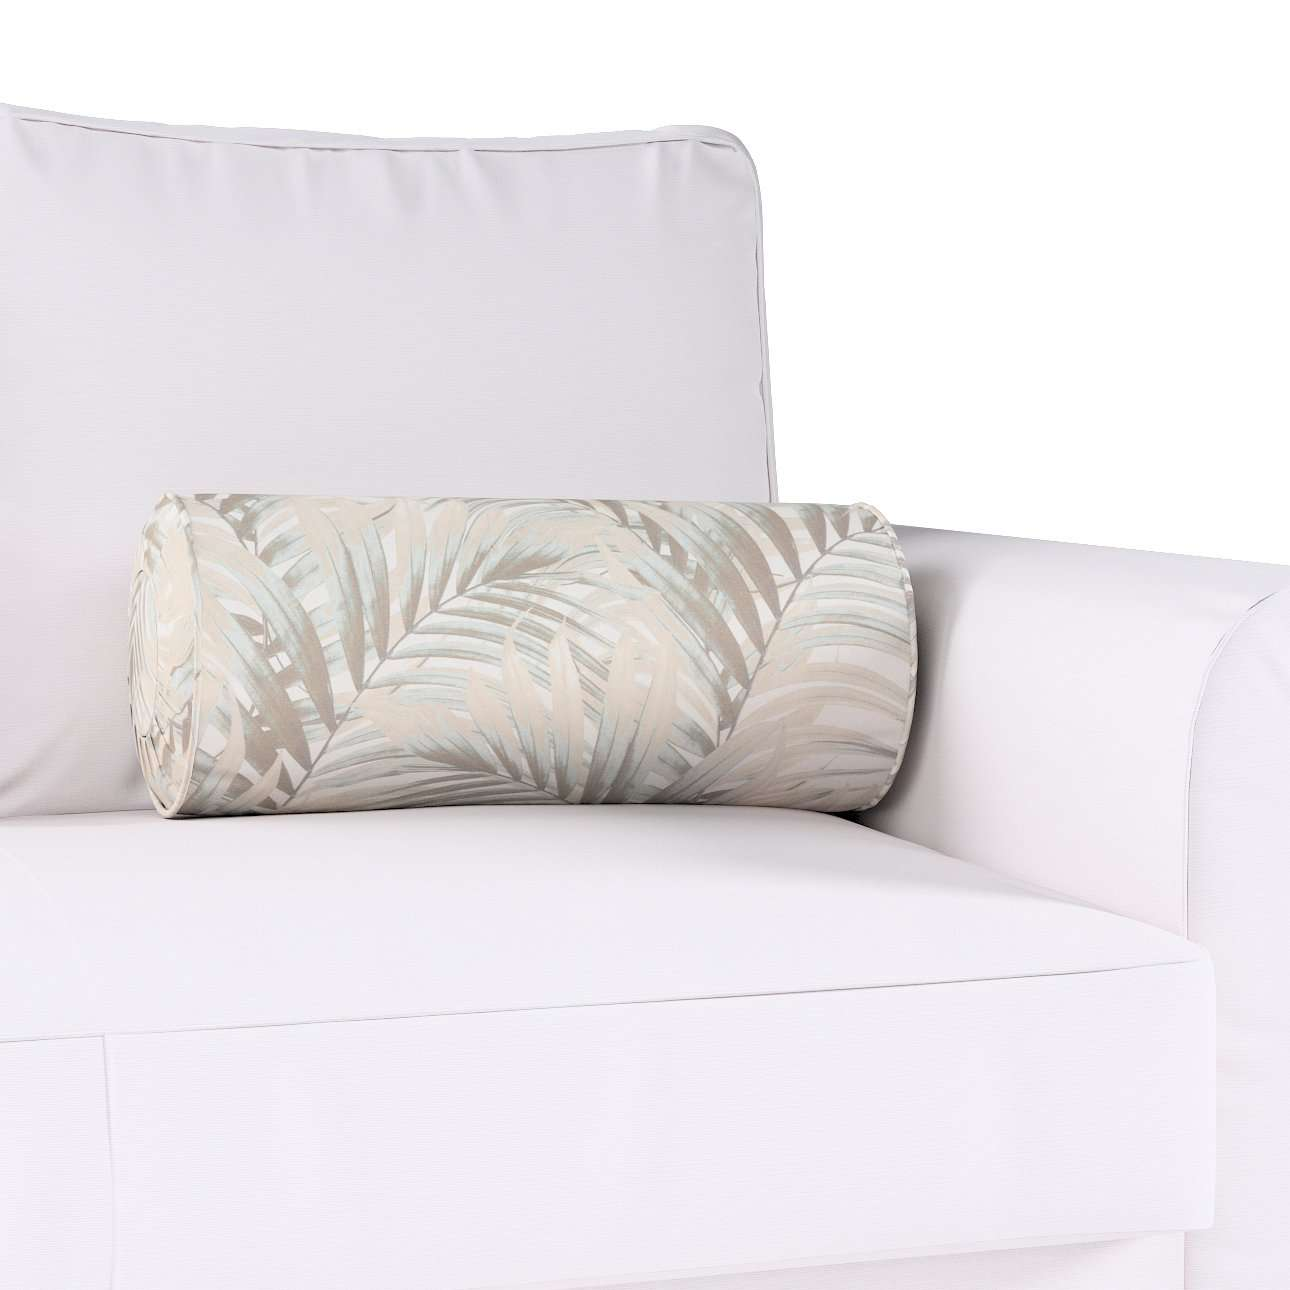 Bolster cushion with pleats in collection Gardenia, fabric: 142-14